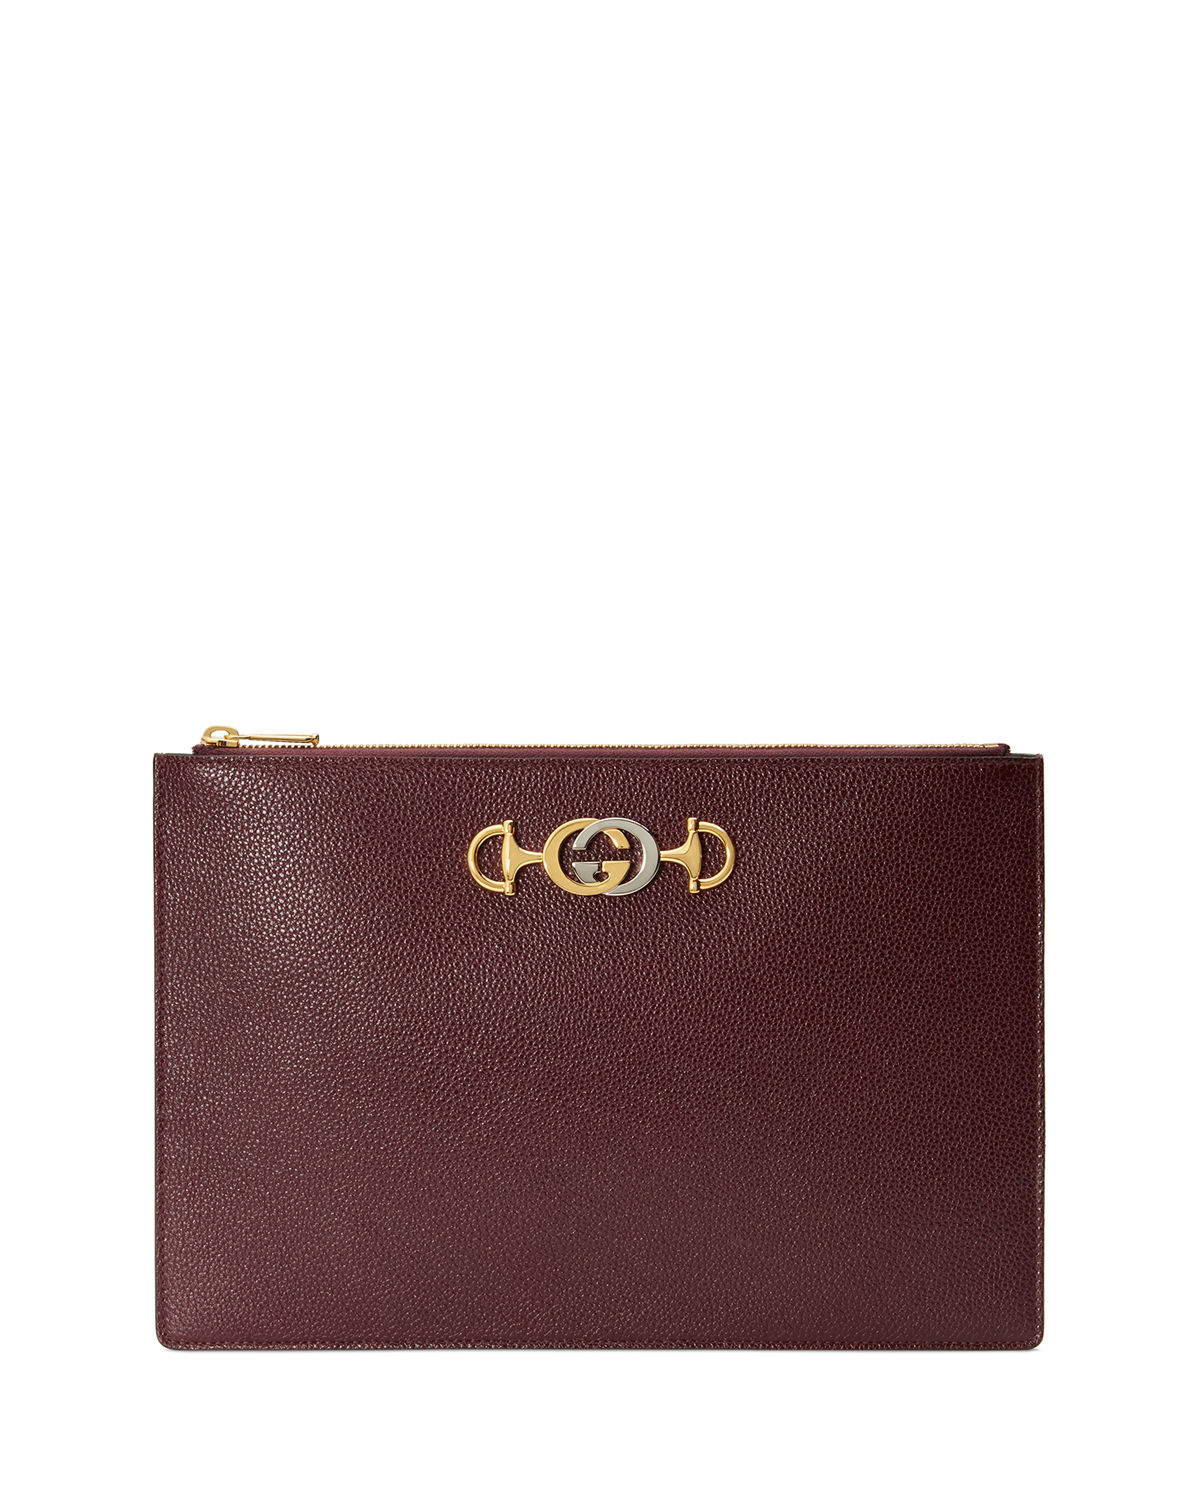 a218a2e53 Gucci Gucci Zumi Leather Pouch Clutch Bag | Neiman Marcus